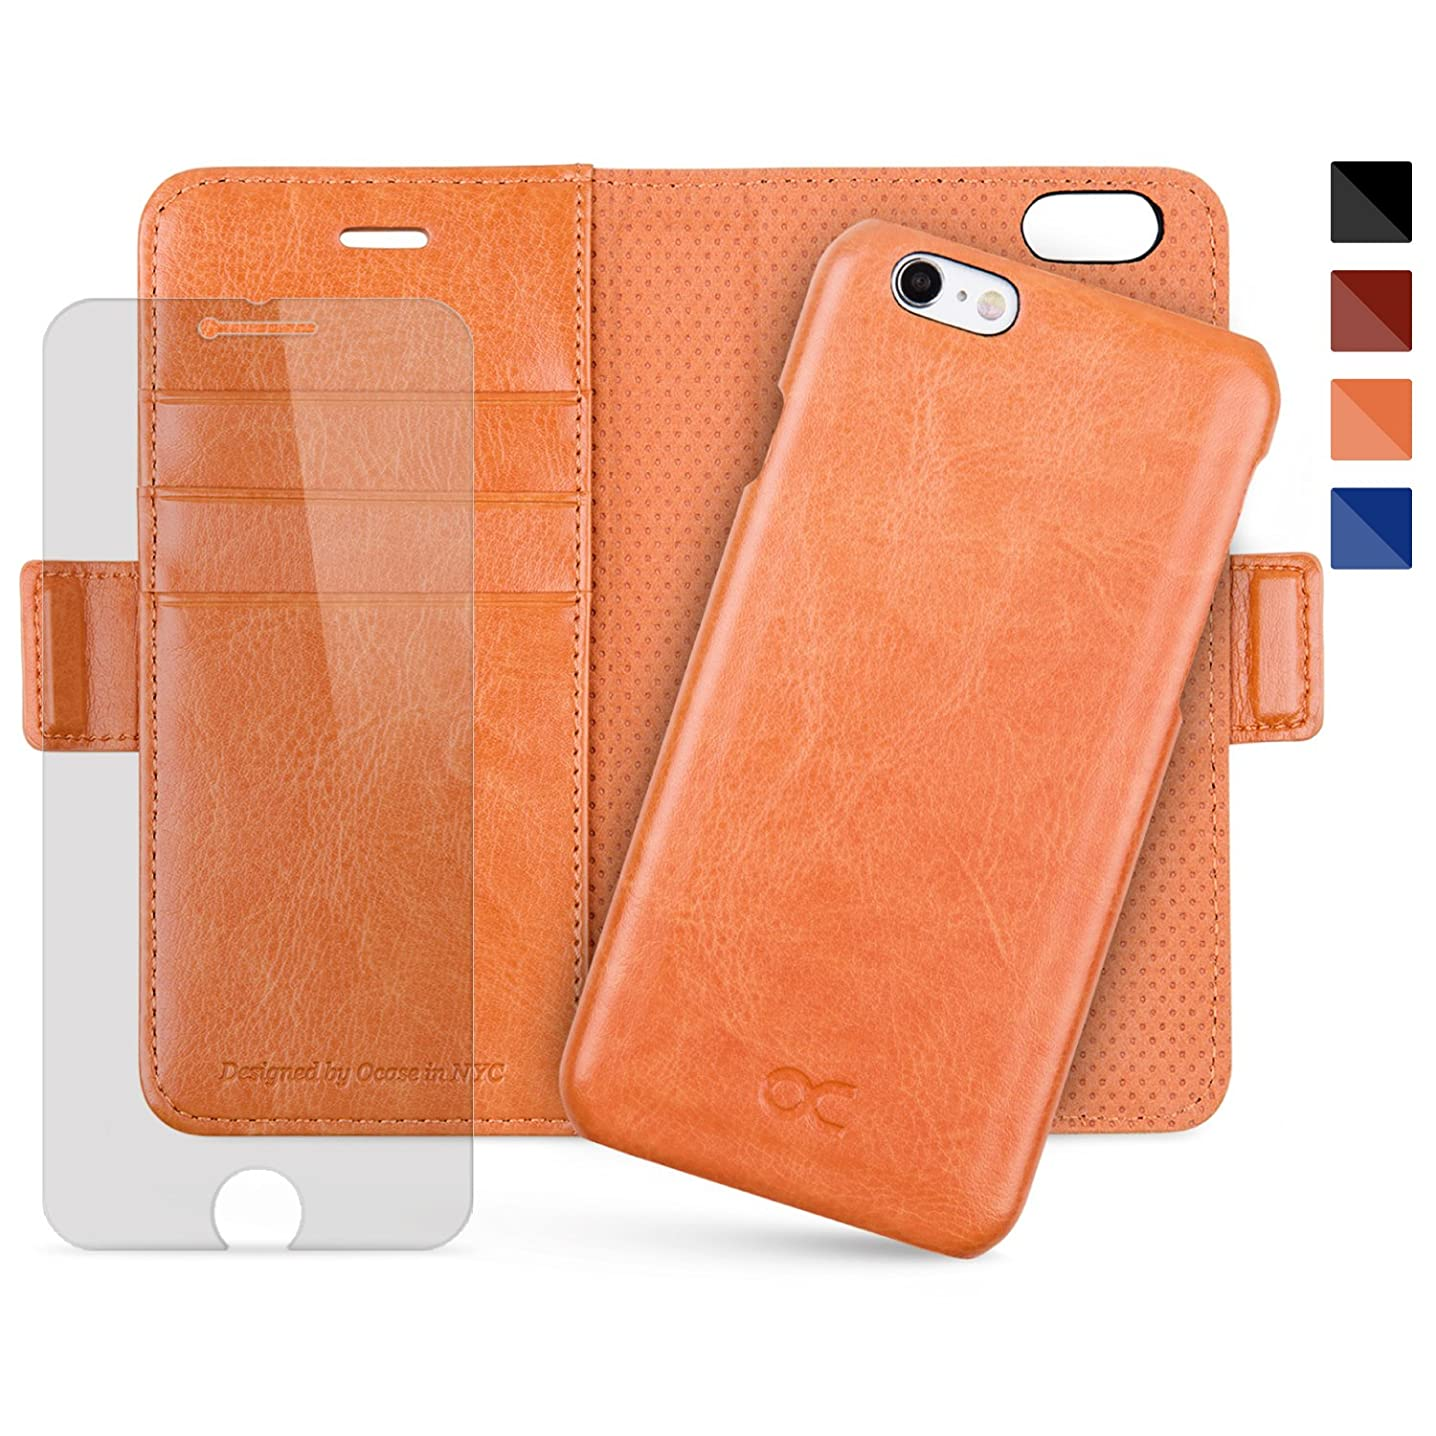 OCASE iPhone 6 Case iPhone 6S Case [Magnetic Detachable Case] Wallet Leather Case [Screen Protector Included] [Upgraded Version] for Apple iPhone 6 / 6S Devices (Blazing Orange)